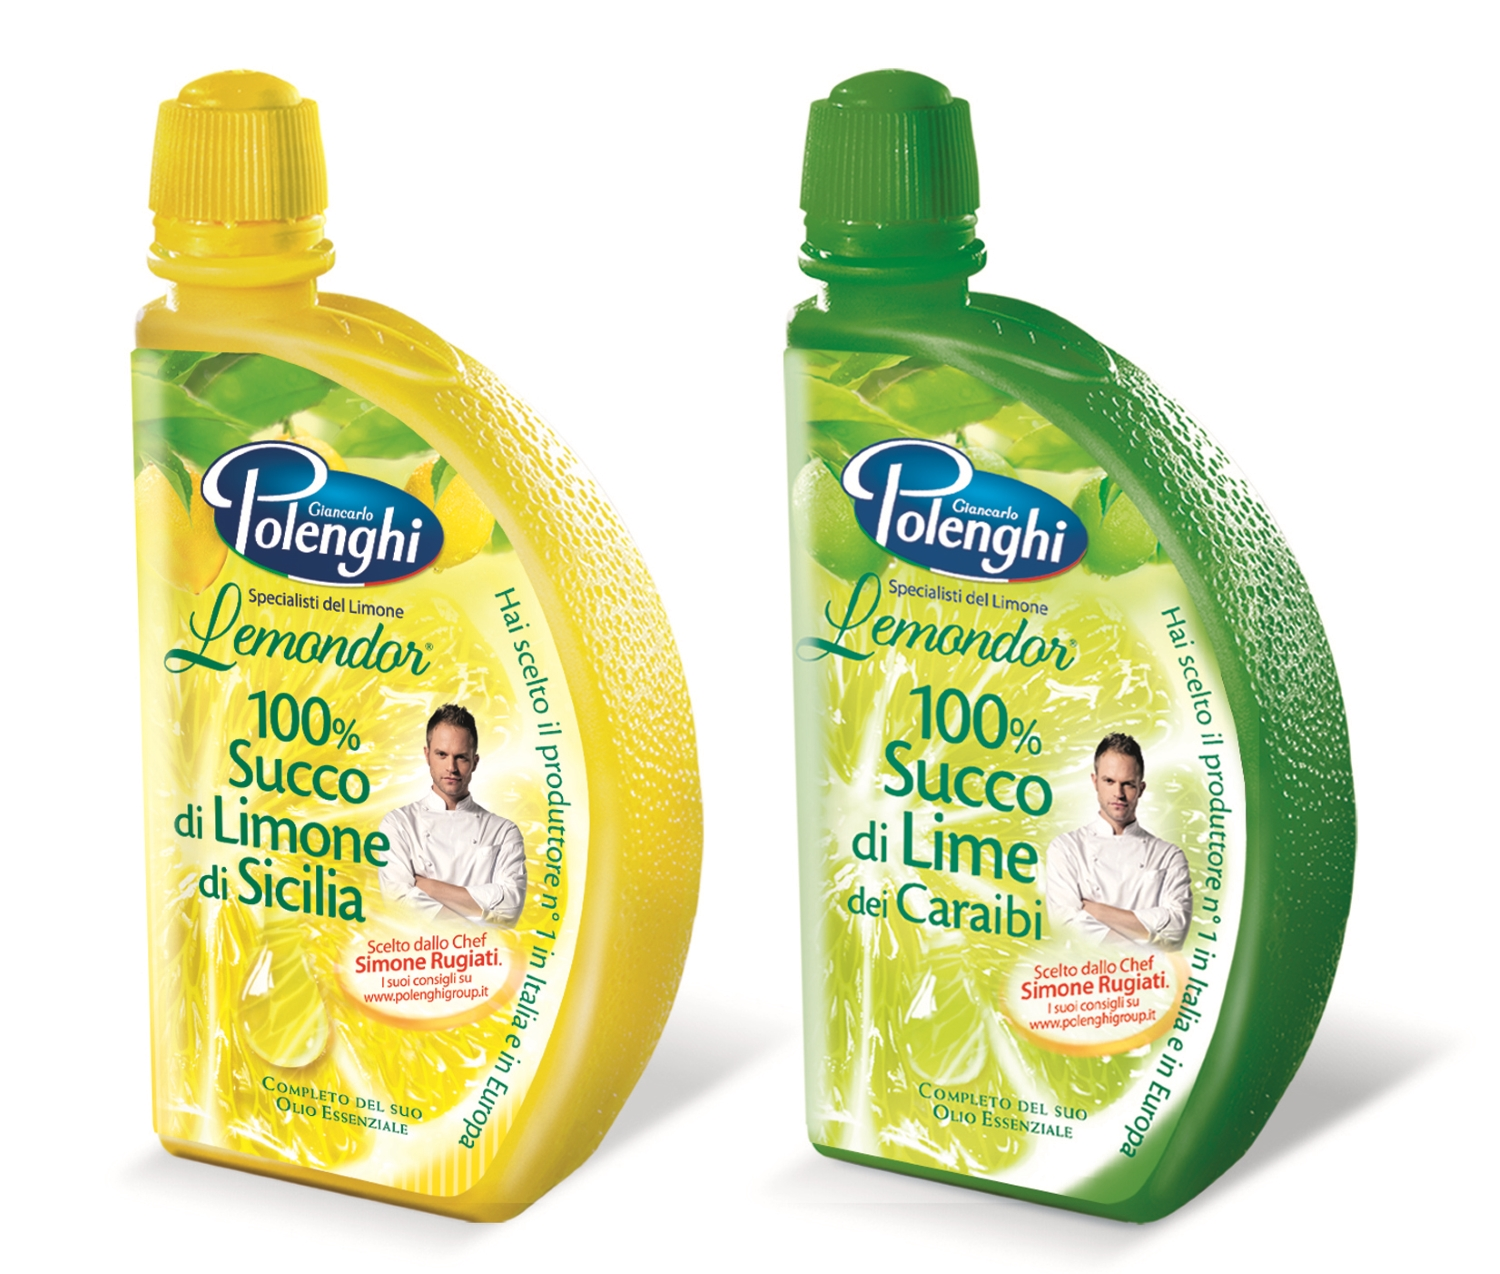 LemondOr Limone Lime